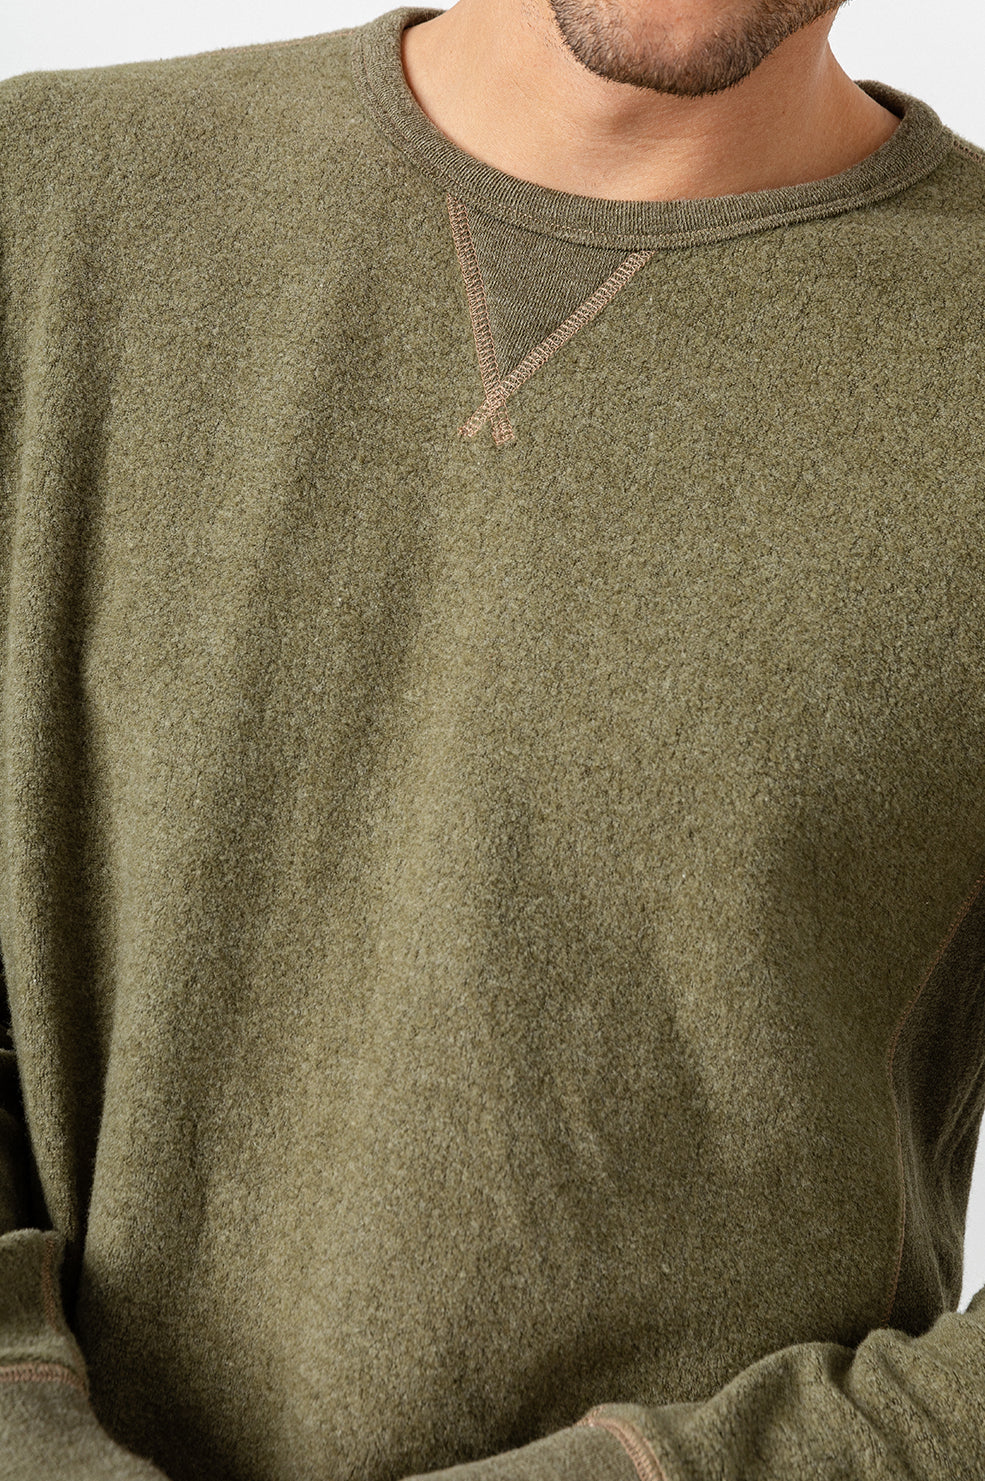 Irving long sleeve, relaxed crewneck pullover in Olive - detail